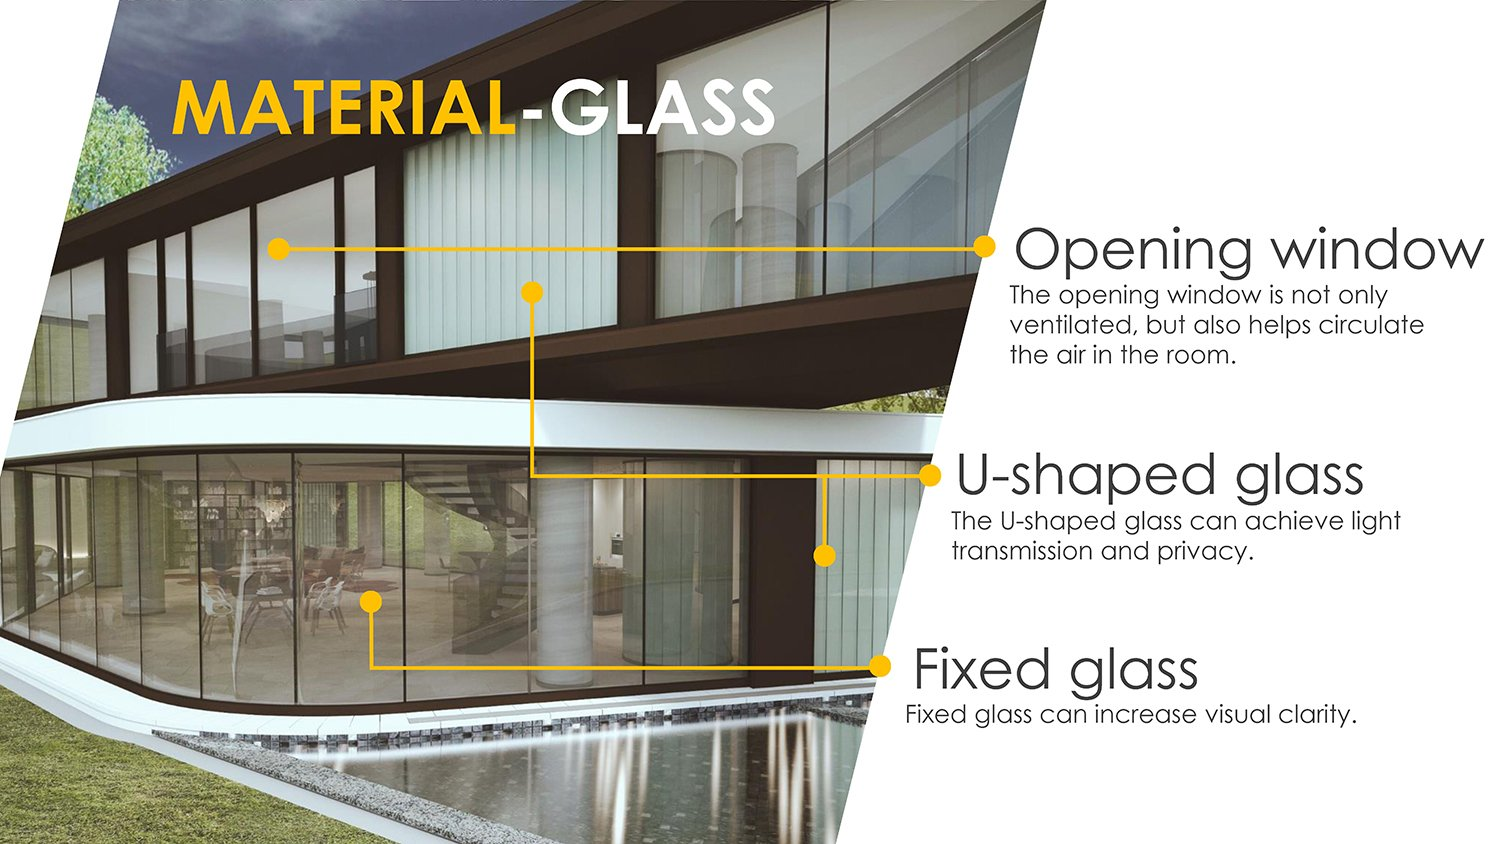 MATERIAL-GLASS Chain10 Architecture & Interior Design Institute}